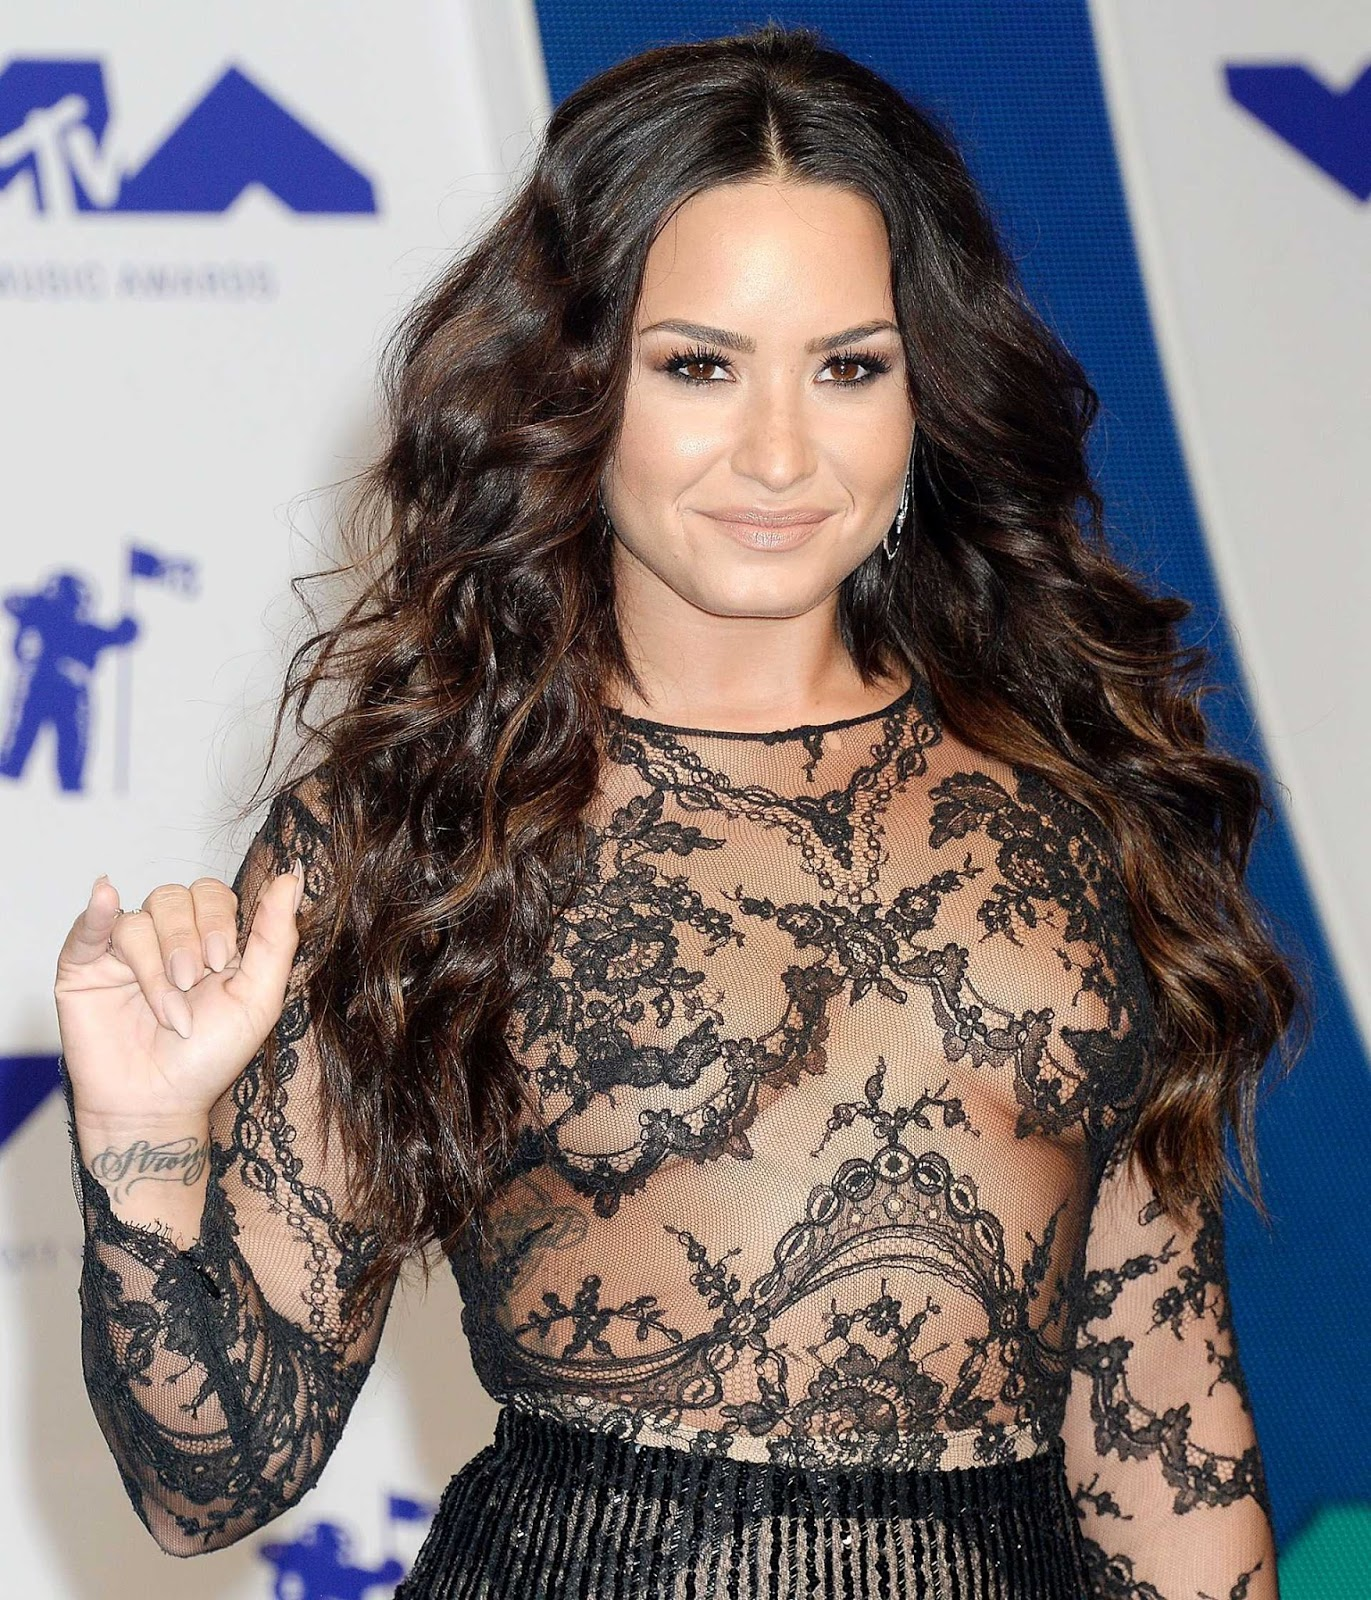 Demi Lovato Frees Her Nipples at the 2017 MTV VMAs